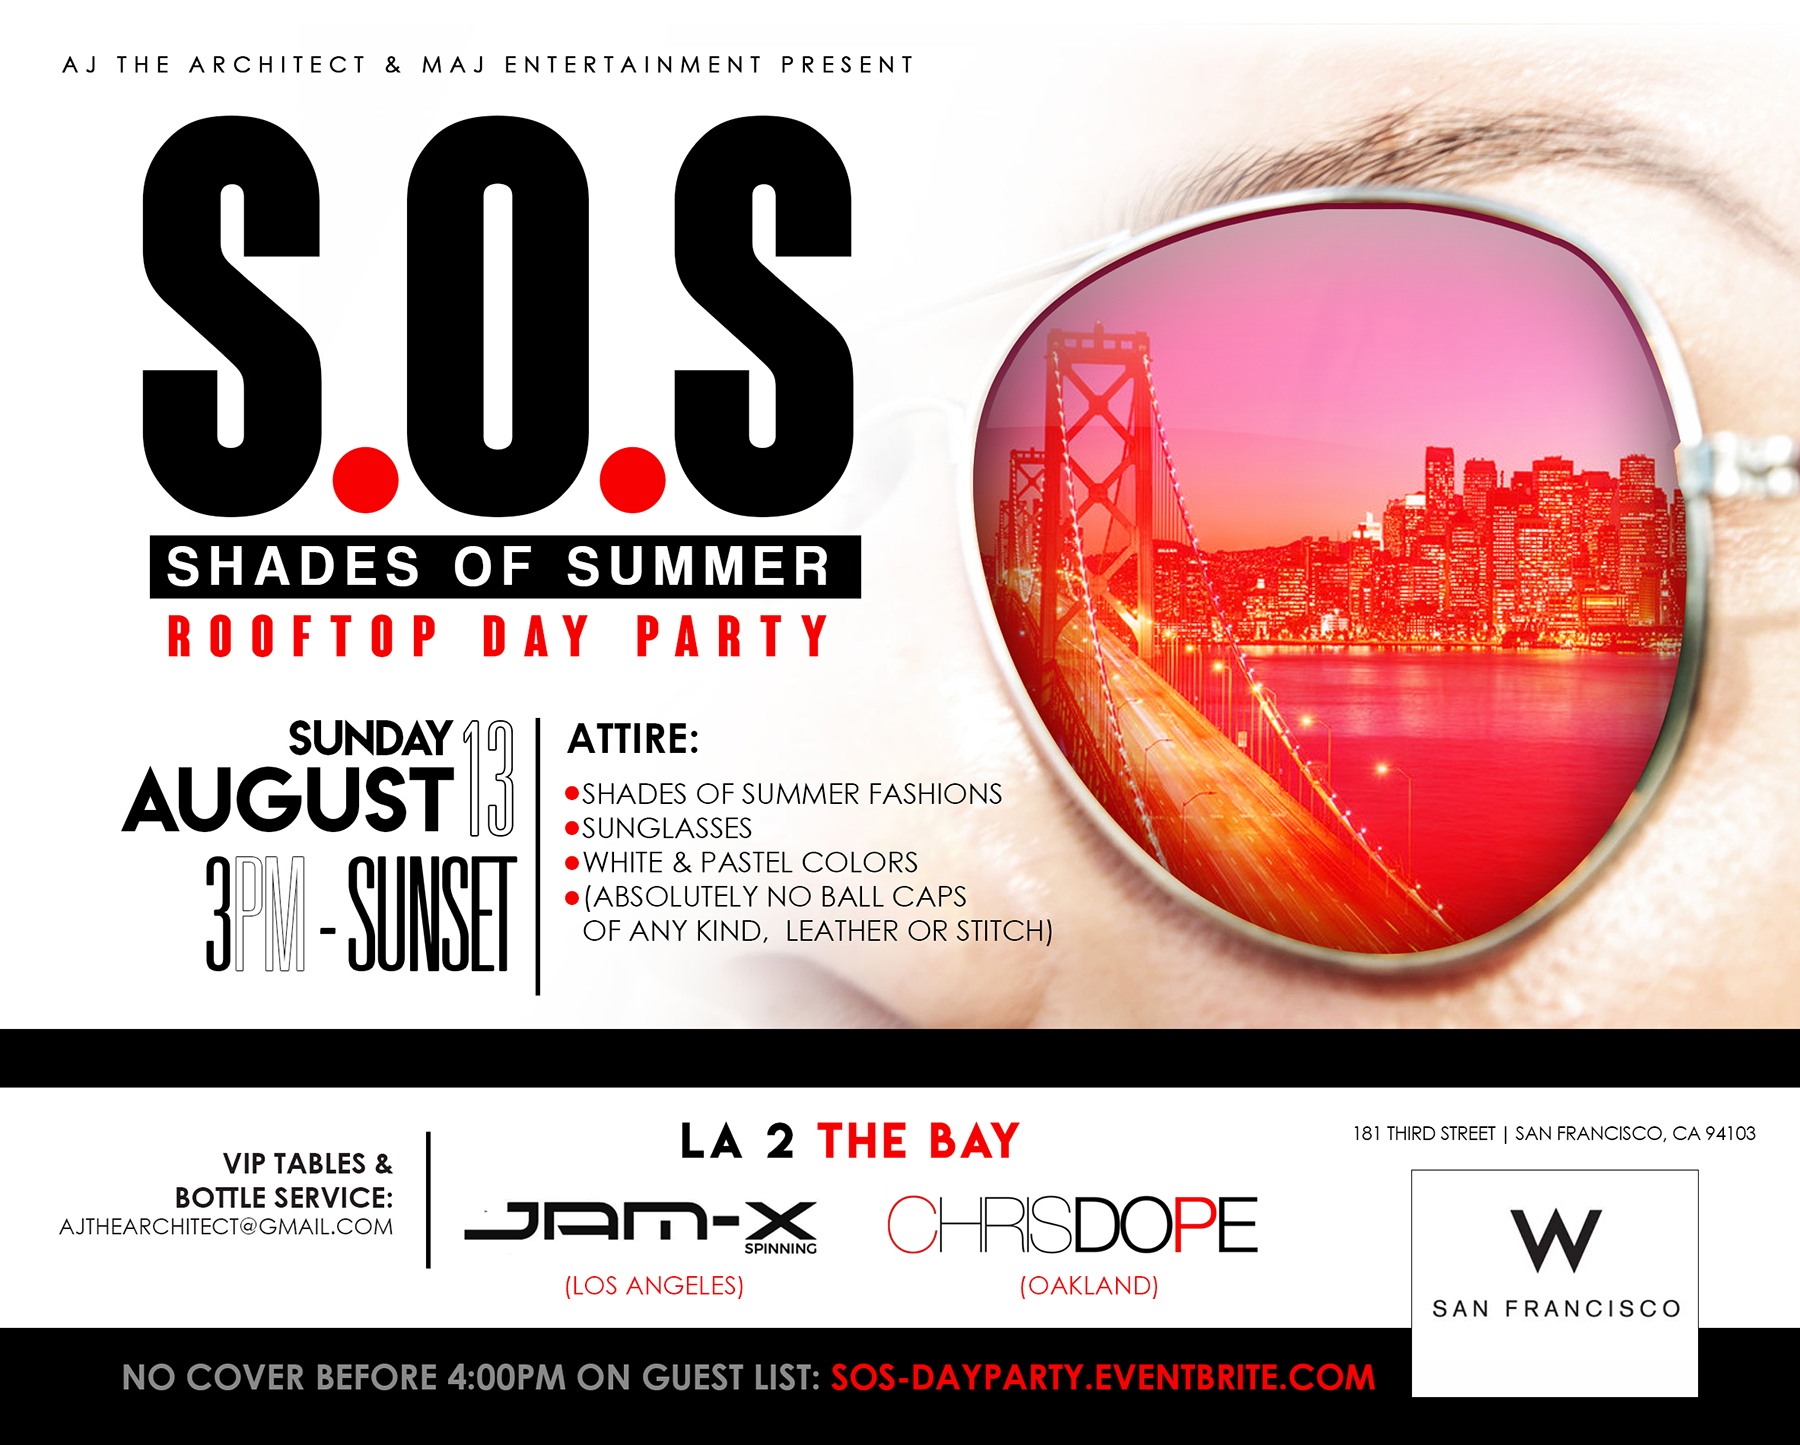 SHADES OF SUMMER (S.O.S): ROOFTOP DAY PARTY @ THE W Tickets, Sun ...